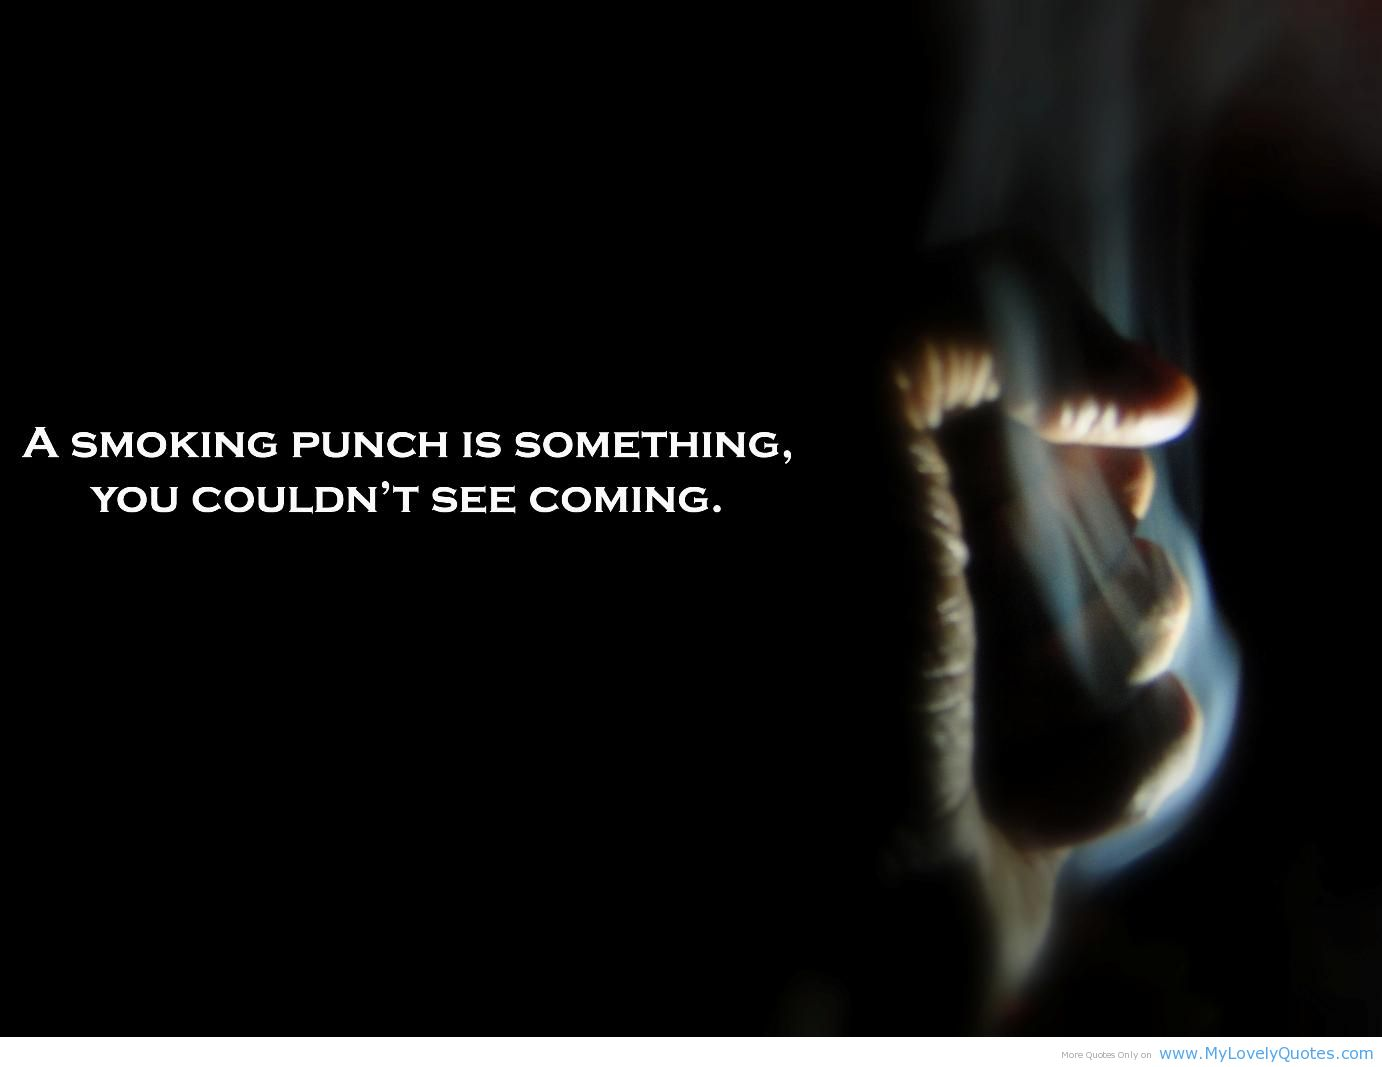 Motivation to Quit Smoking: Inspirational Quotes and ... |Smoking Is Bad For You Quotes